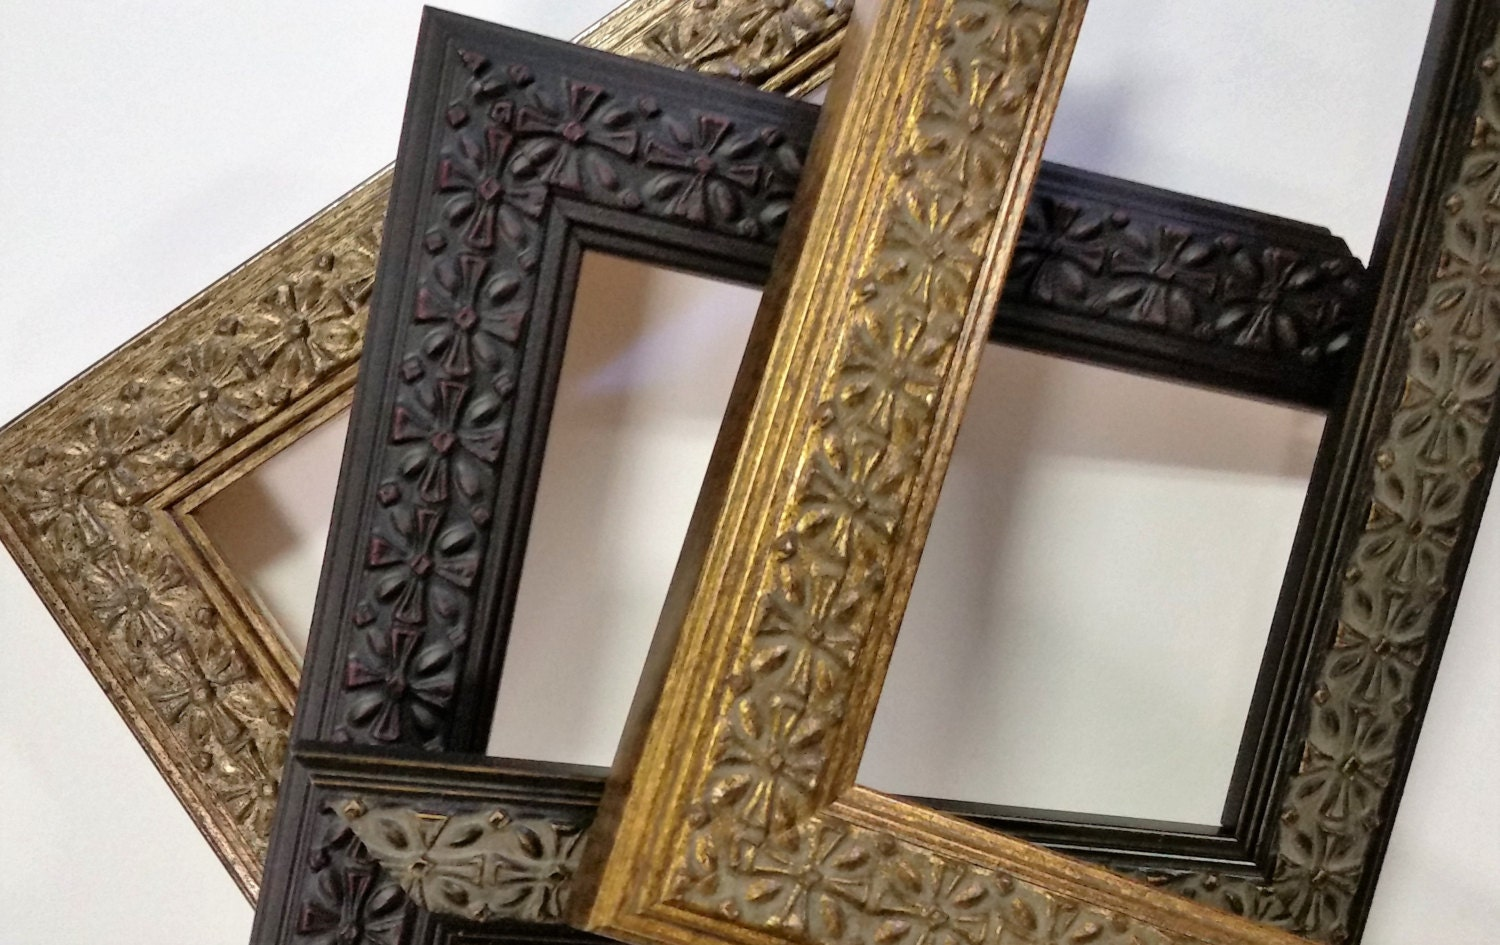 14 x 18 - 20 x 24 Wood Picture Frames, Ornate, Vintage, Traditional ...